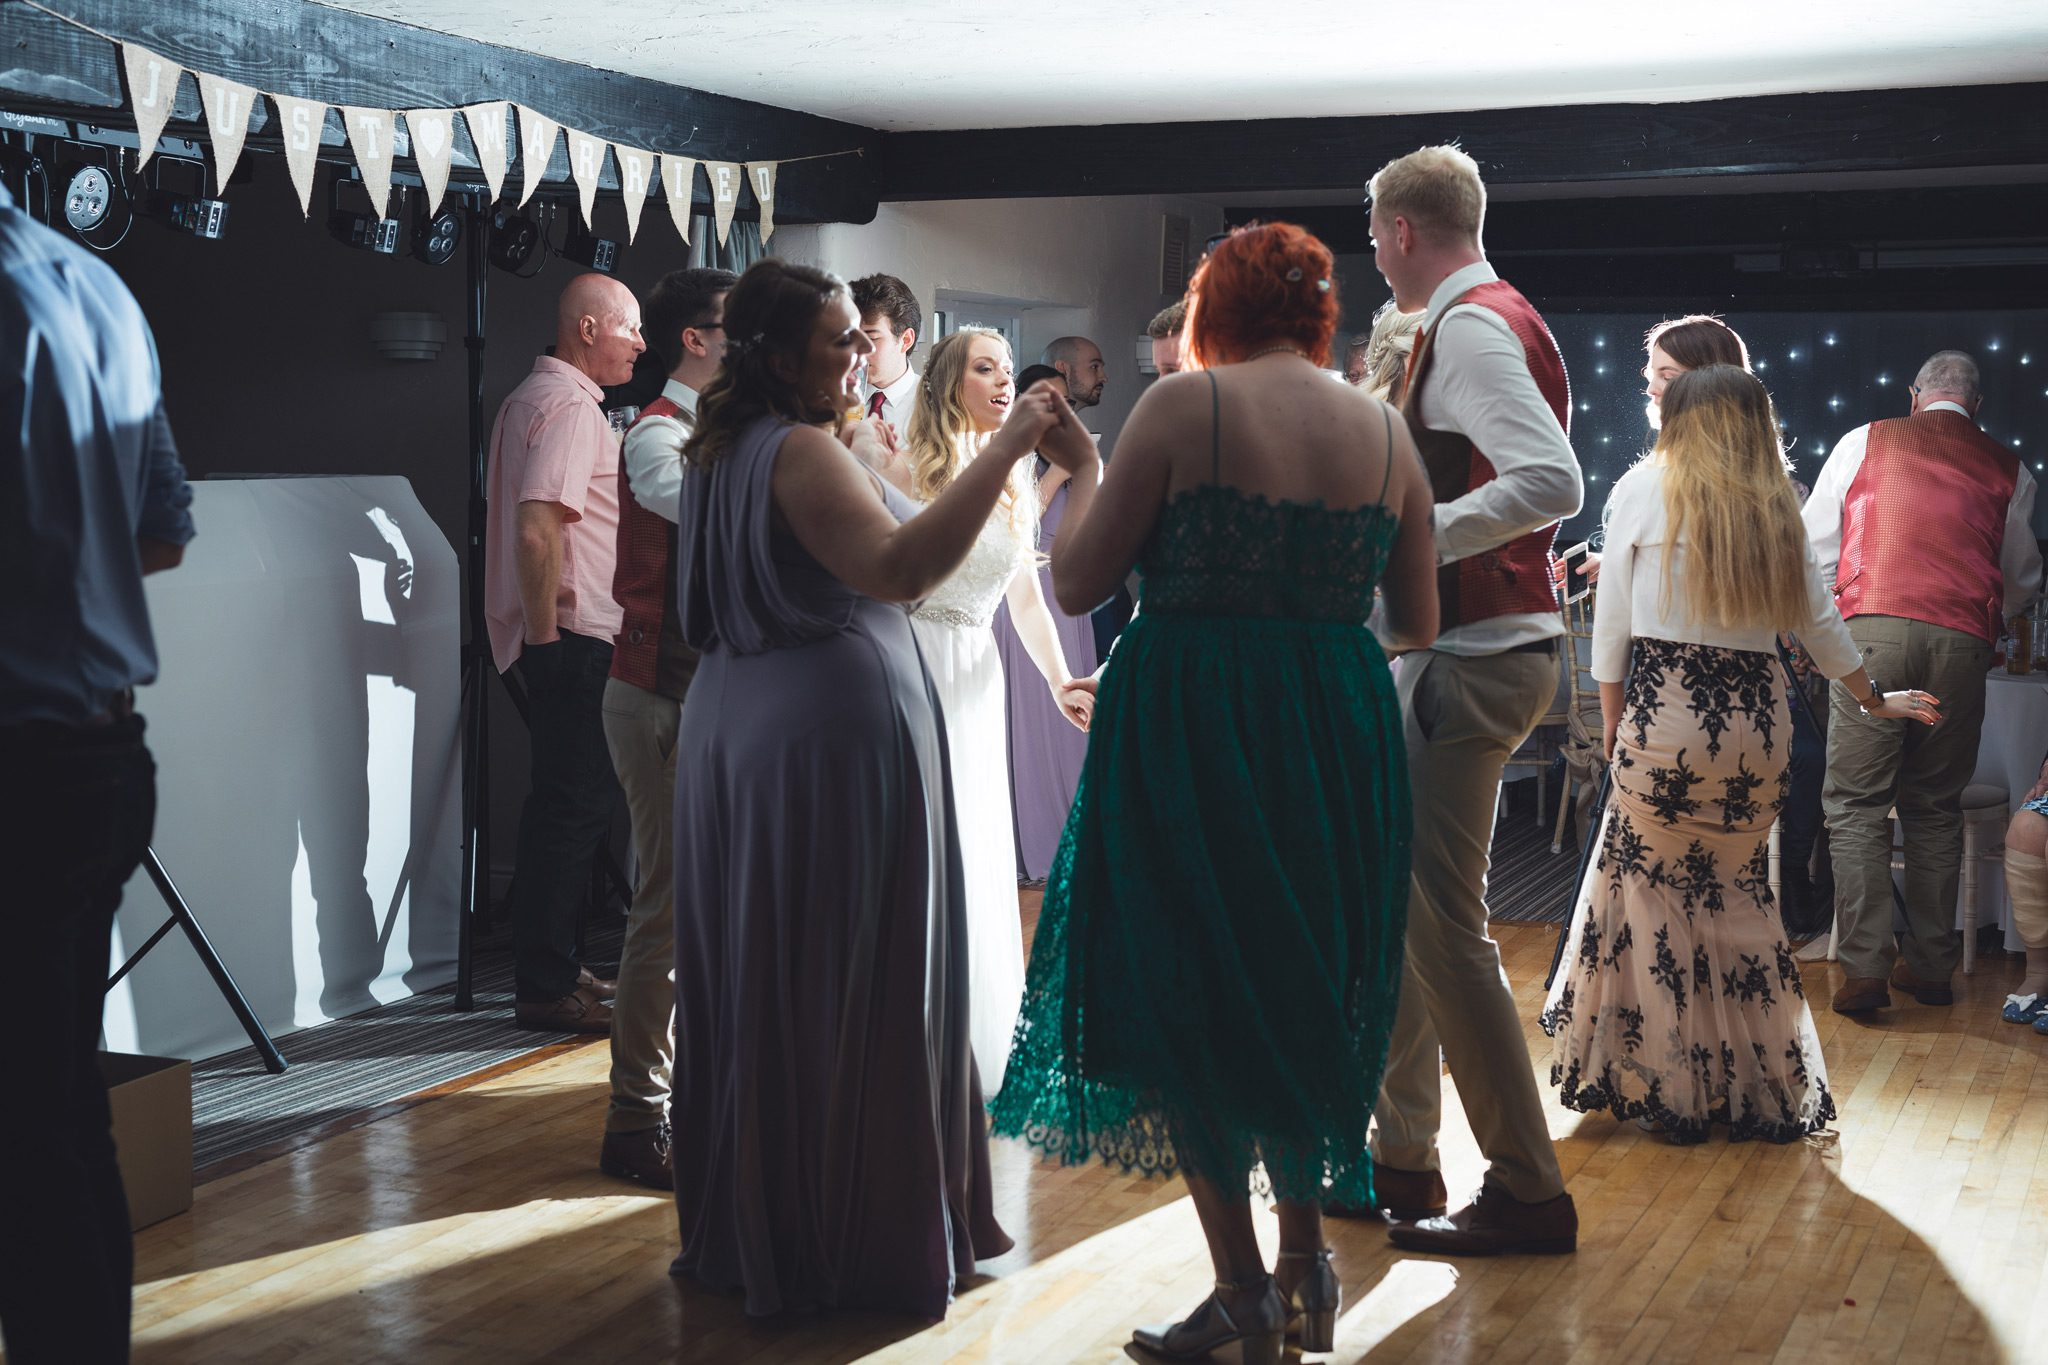 Chesterfield Wedding Party Dancing